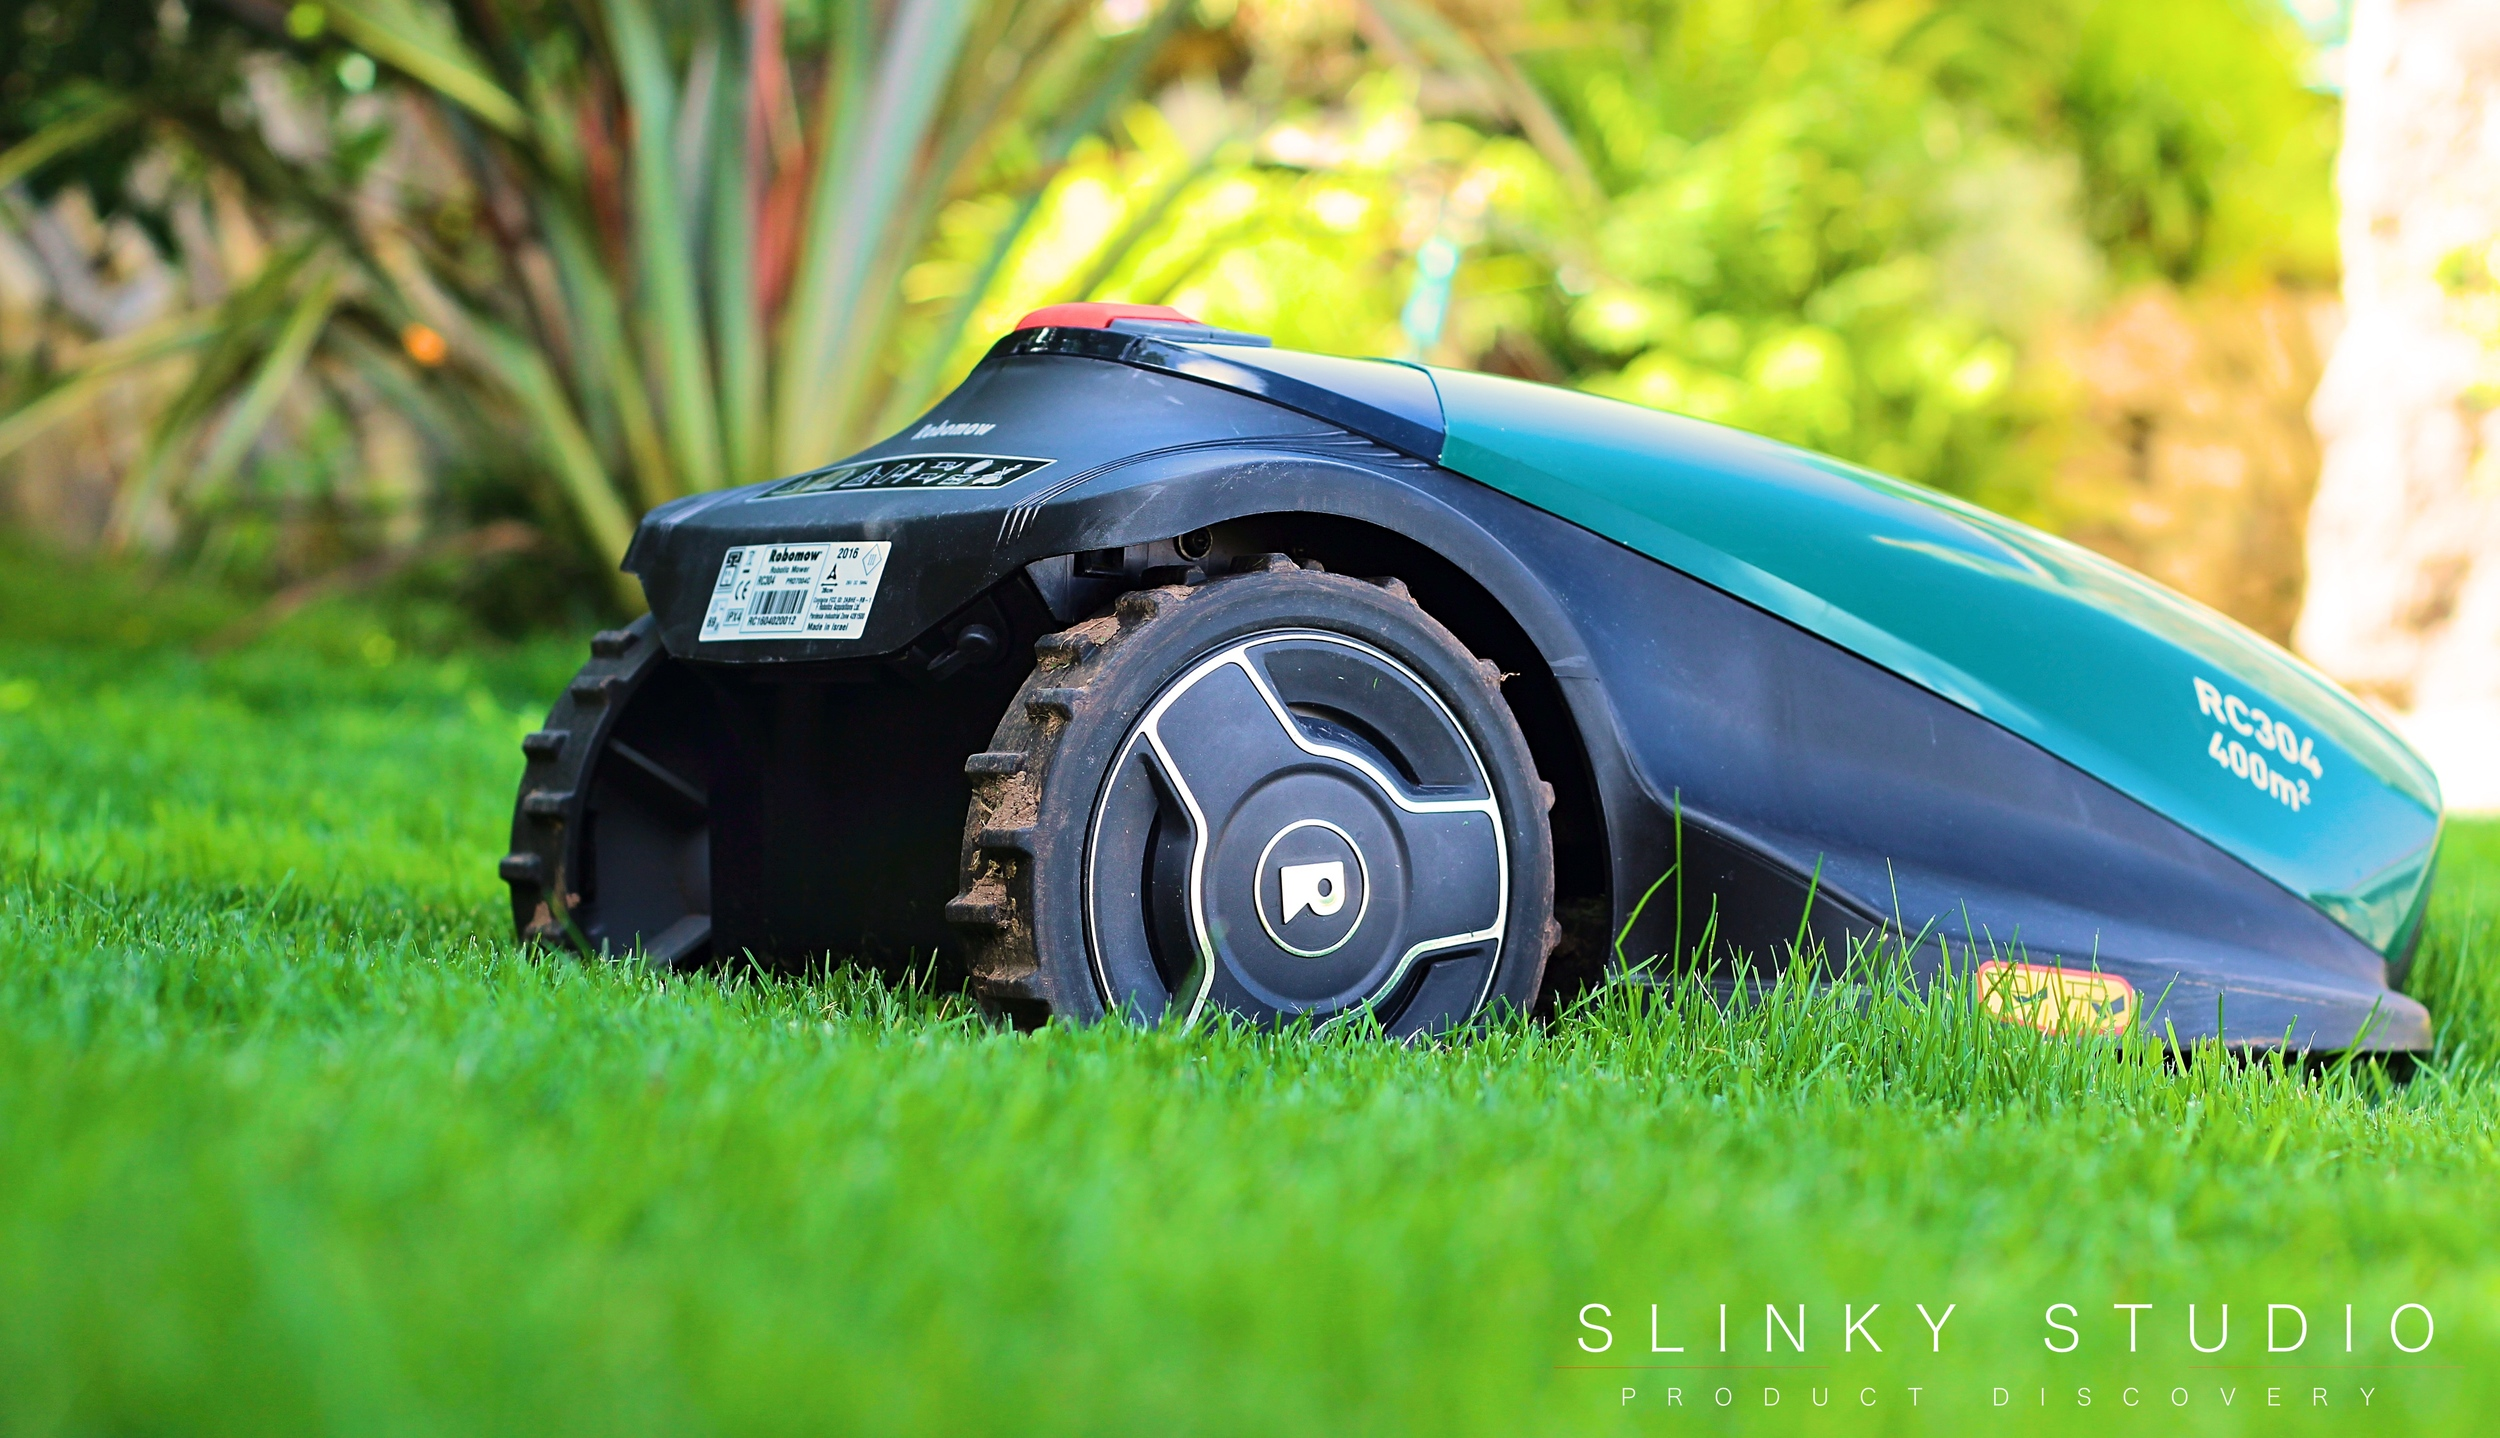 Robomow RC304 Robot Lawnmower Climbing Slope.jpg